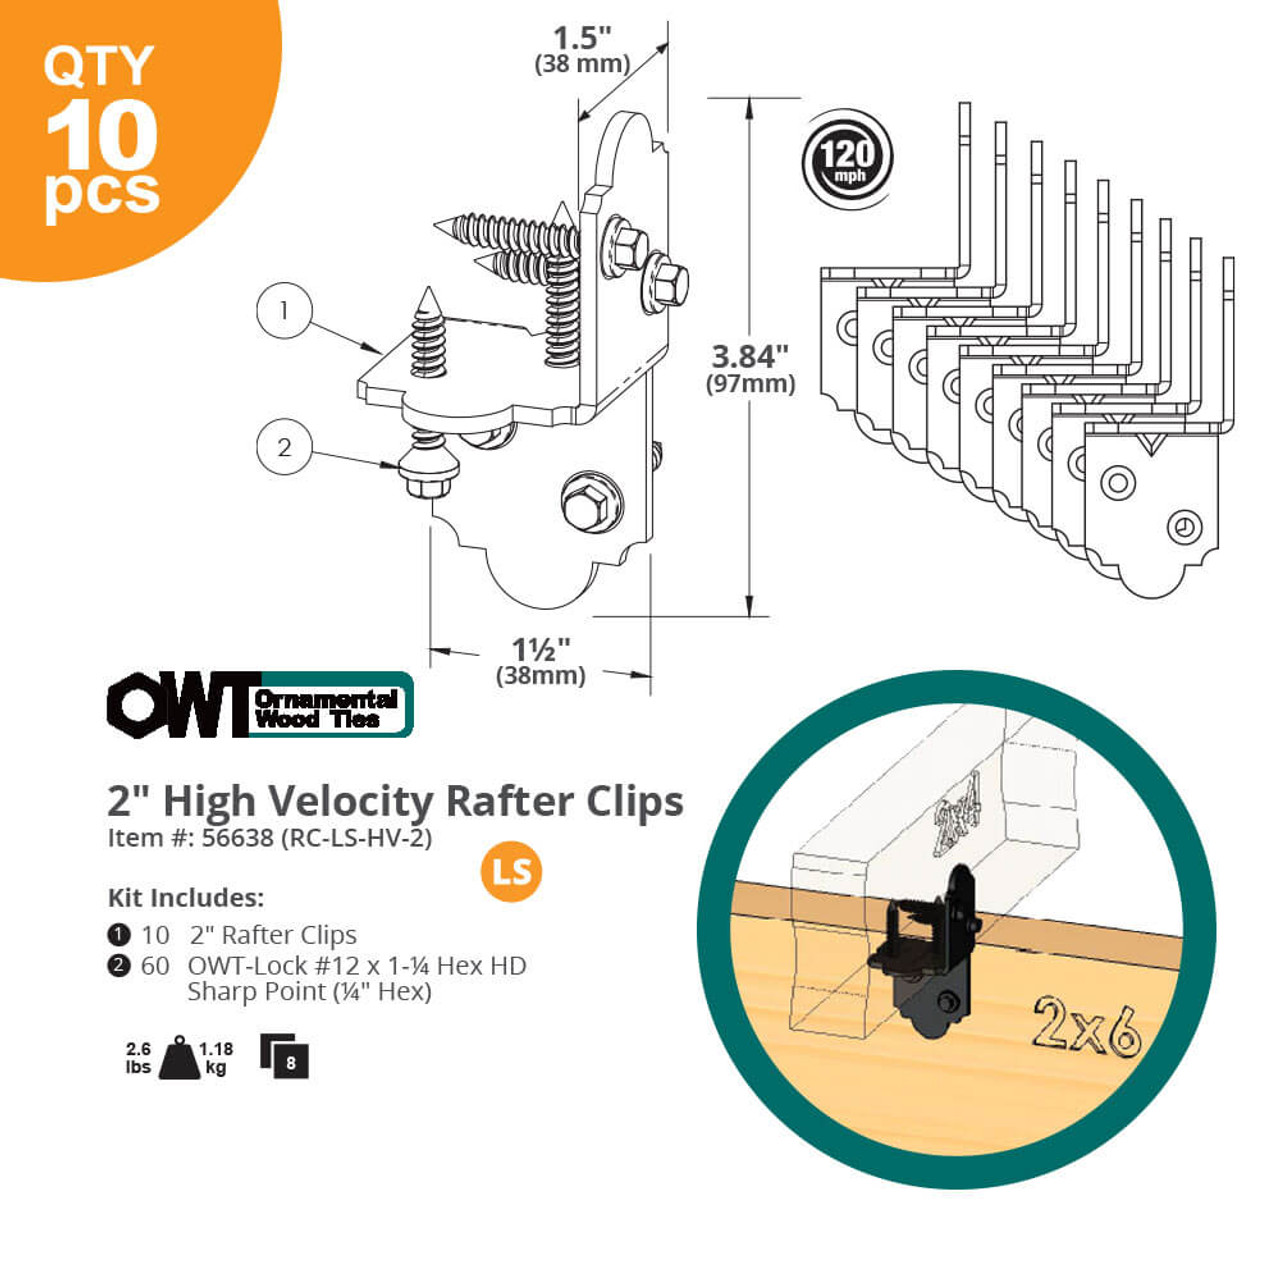 "OZCO OWT 2"" High Velocity Rafter Clips w/ Laredo Sunset Style Dimension Drawing"